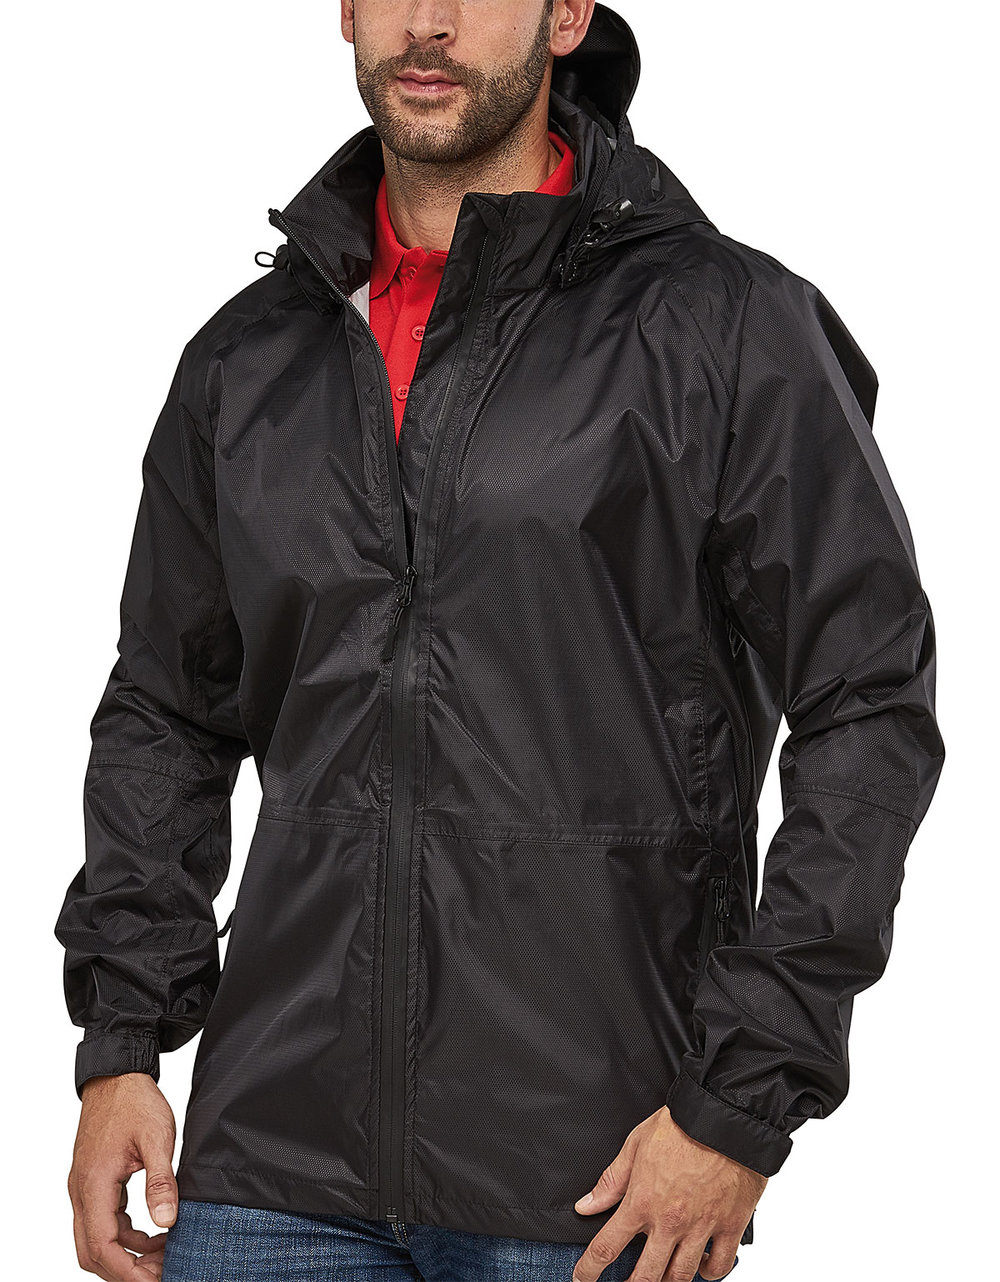 INFINITY RIBTECH5000/5000 SUPER LIGHT TECH RAIN JACKET MALE MACBLACK